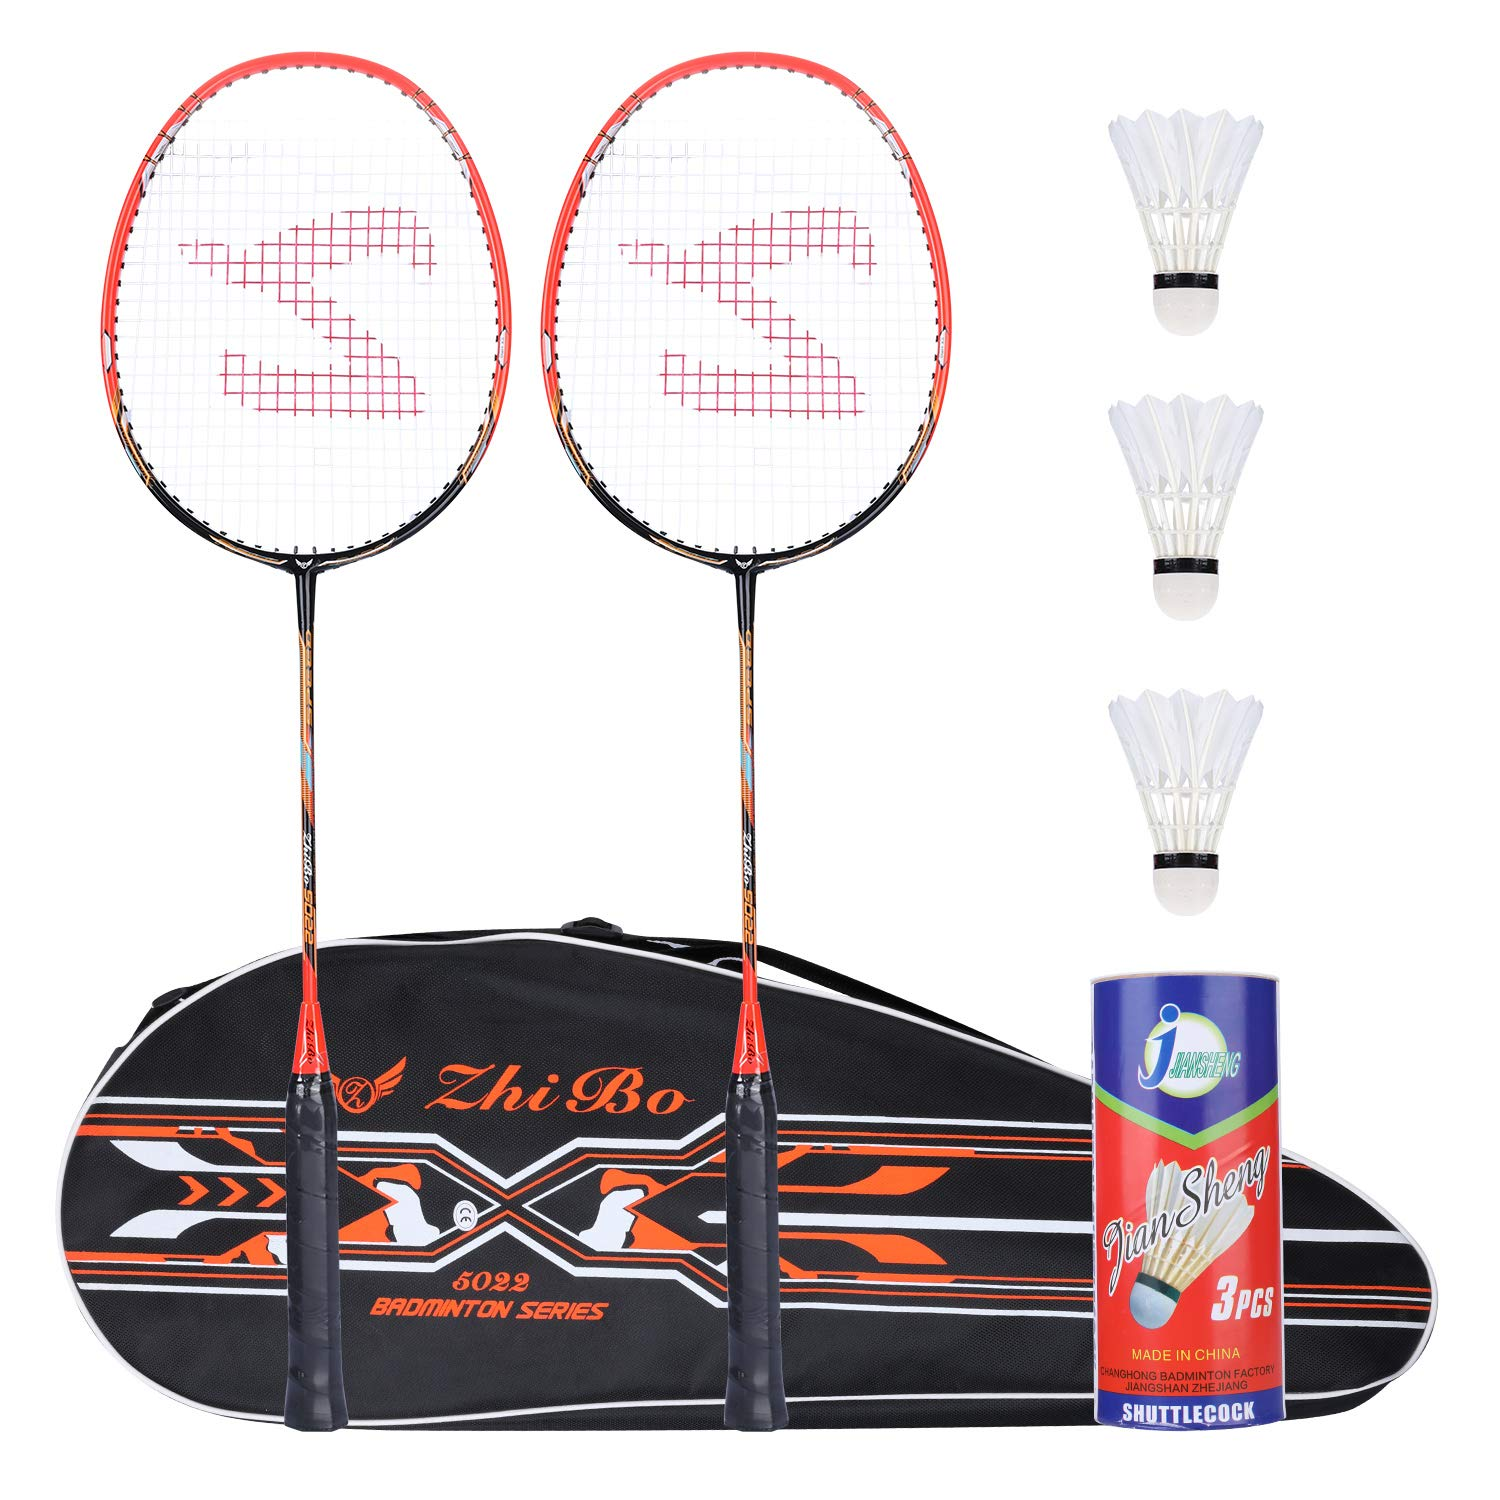 Fostoy Badminton Racquet Badminton Racket Set-Professional Carbon Fiber Badminton Racket with 3 shuttlecocks and Carrying Bag-Perfect for Adults (Orange)